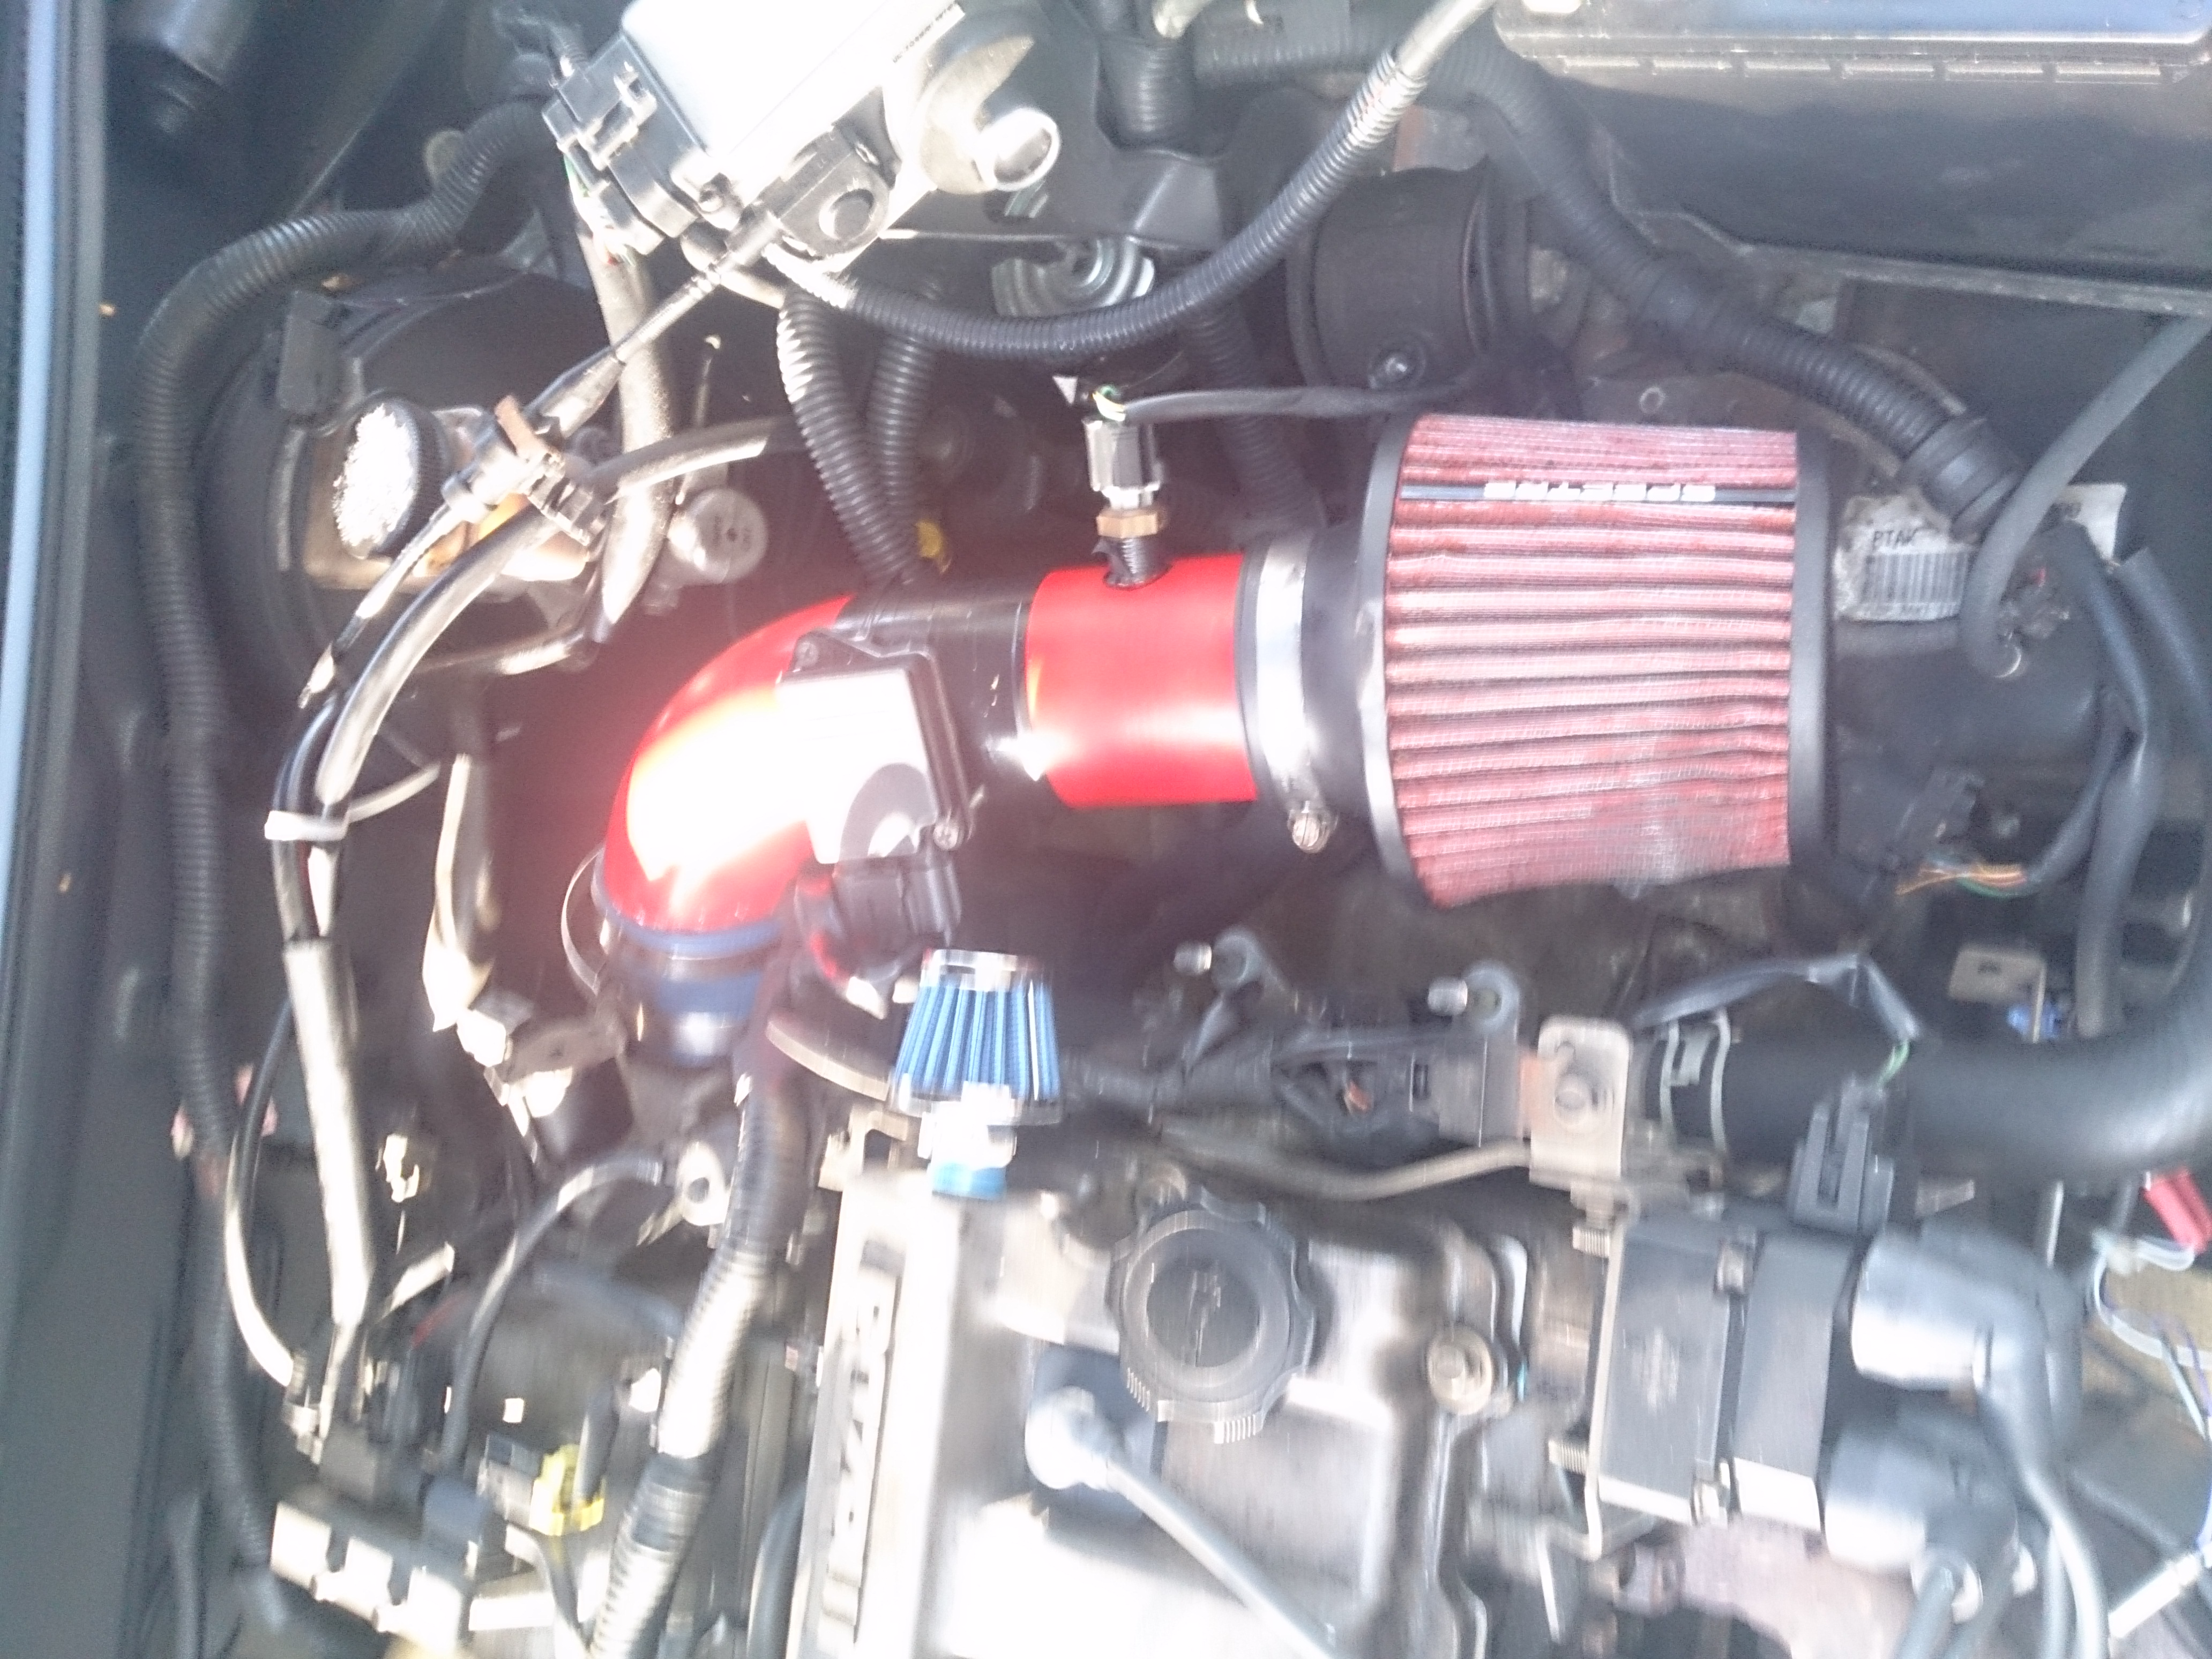 Added the intake in  - 19091843